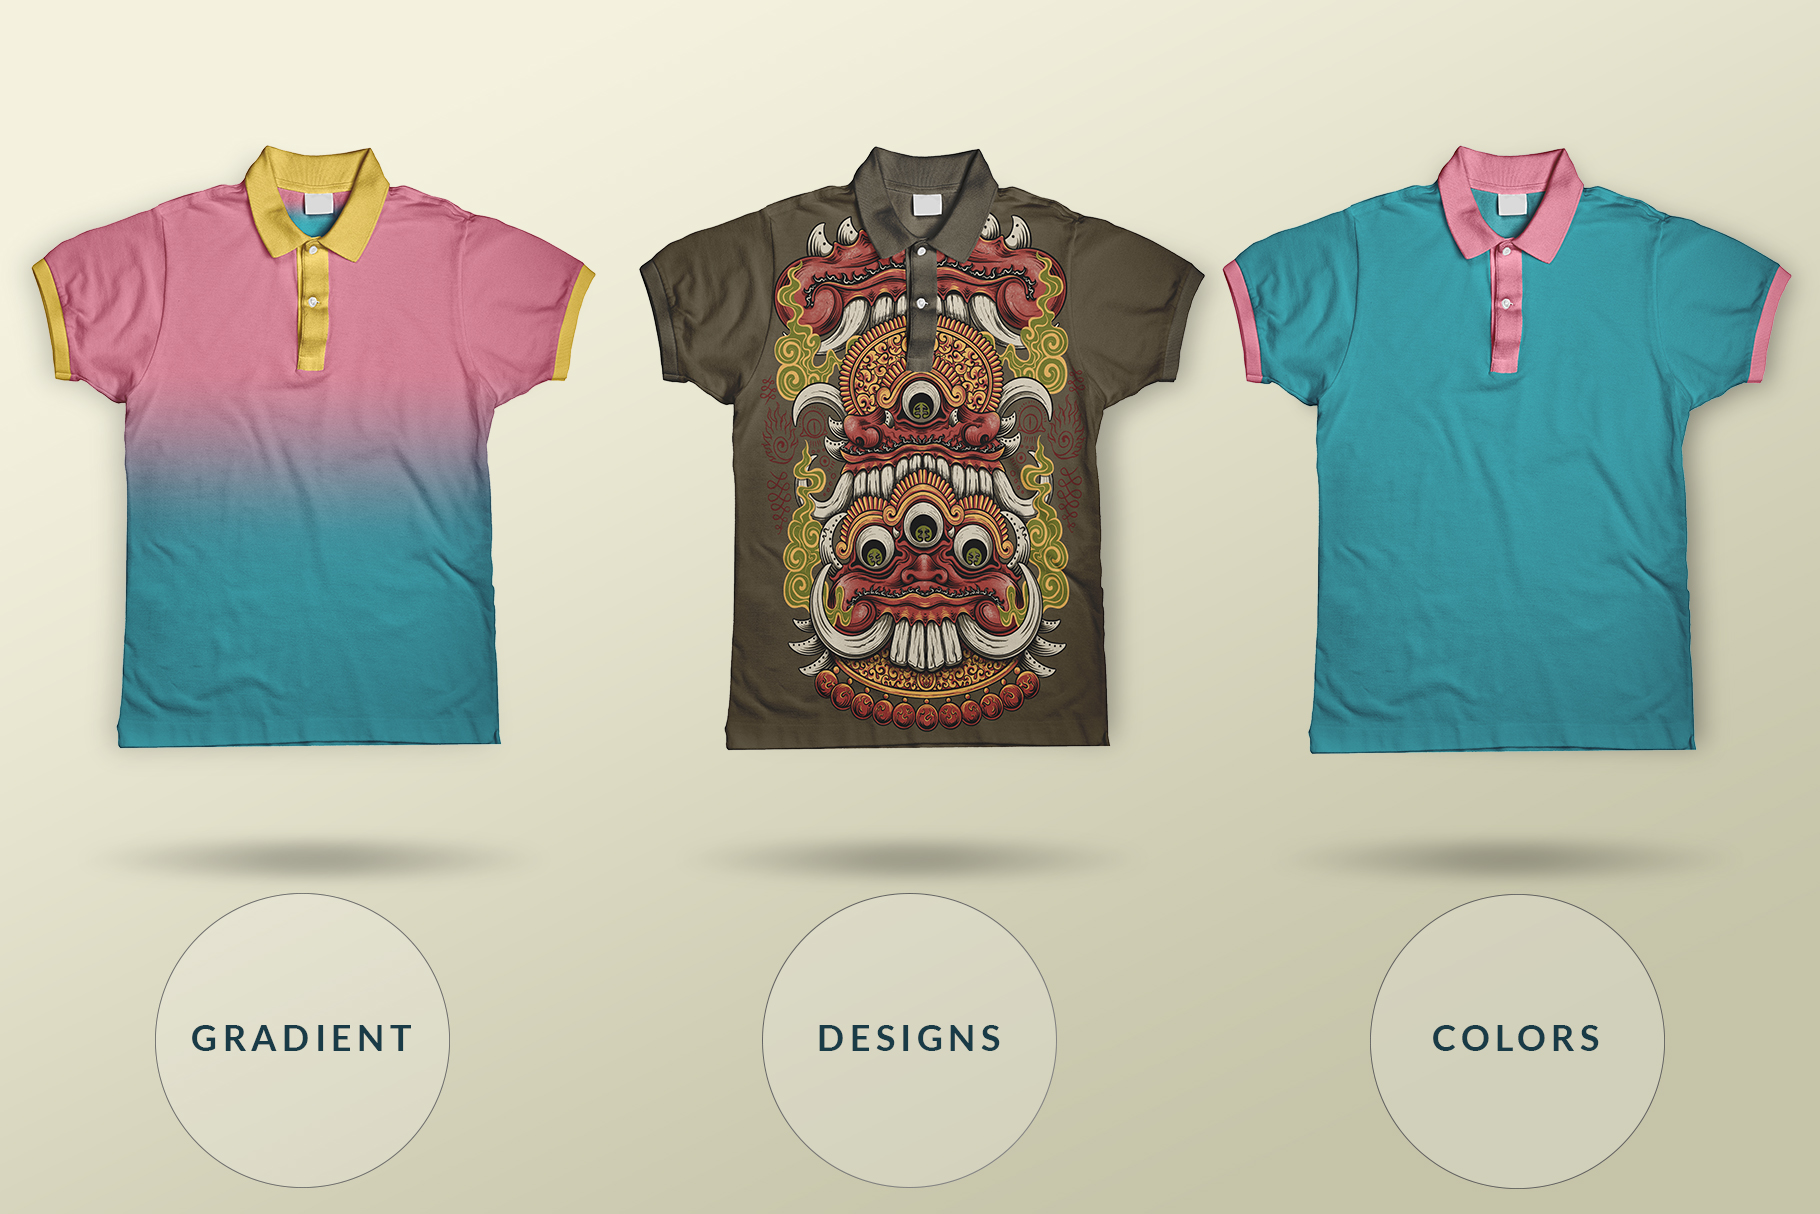 multiple-collar-type-t-shirt-mockup-image-preview-4